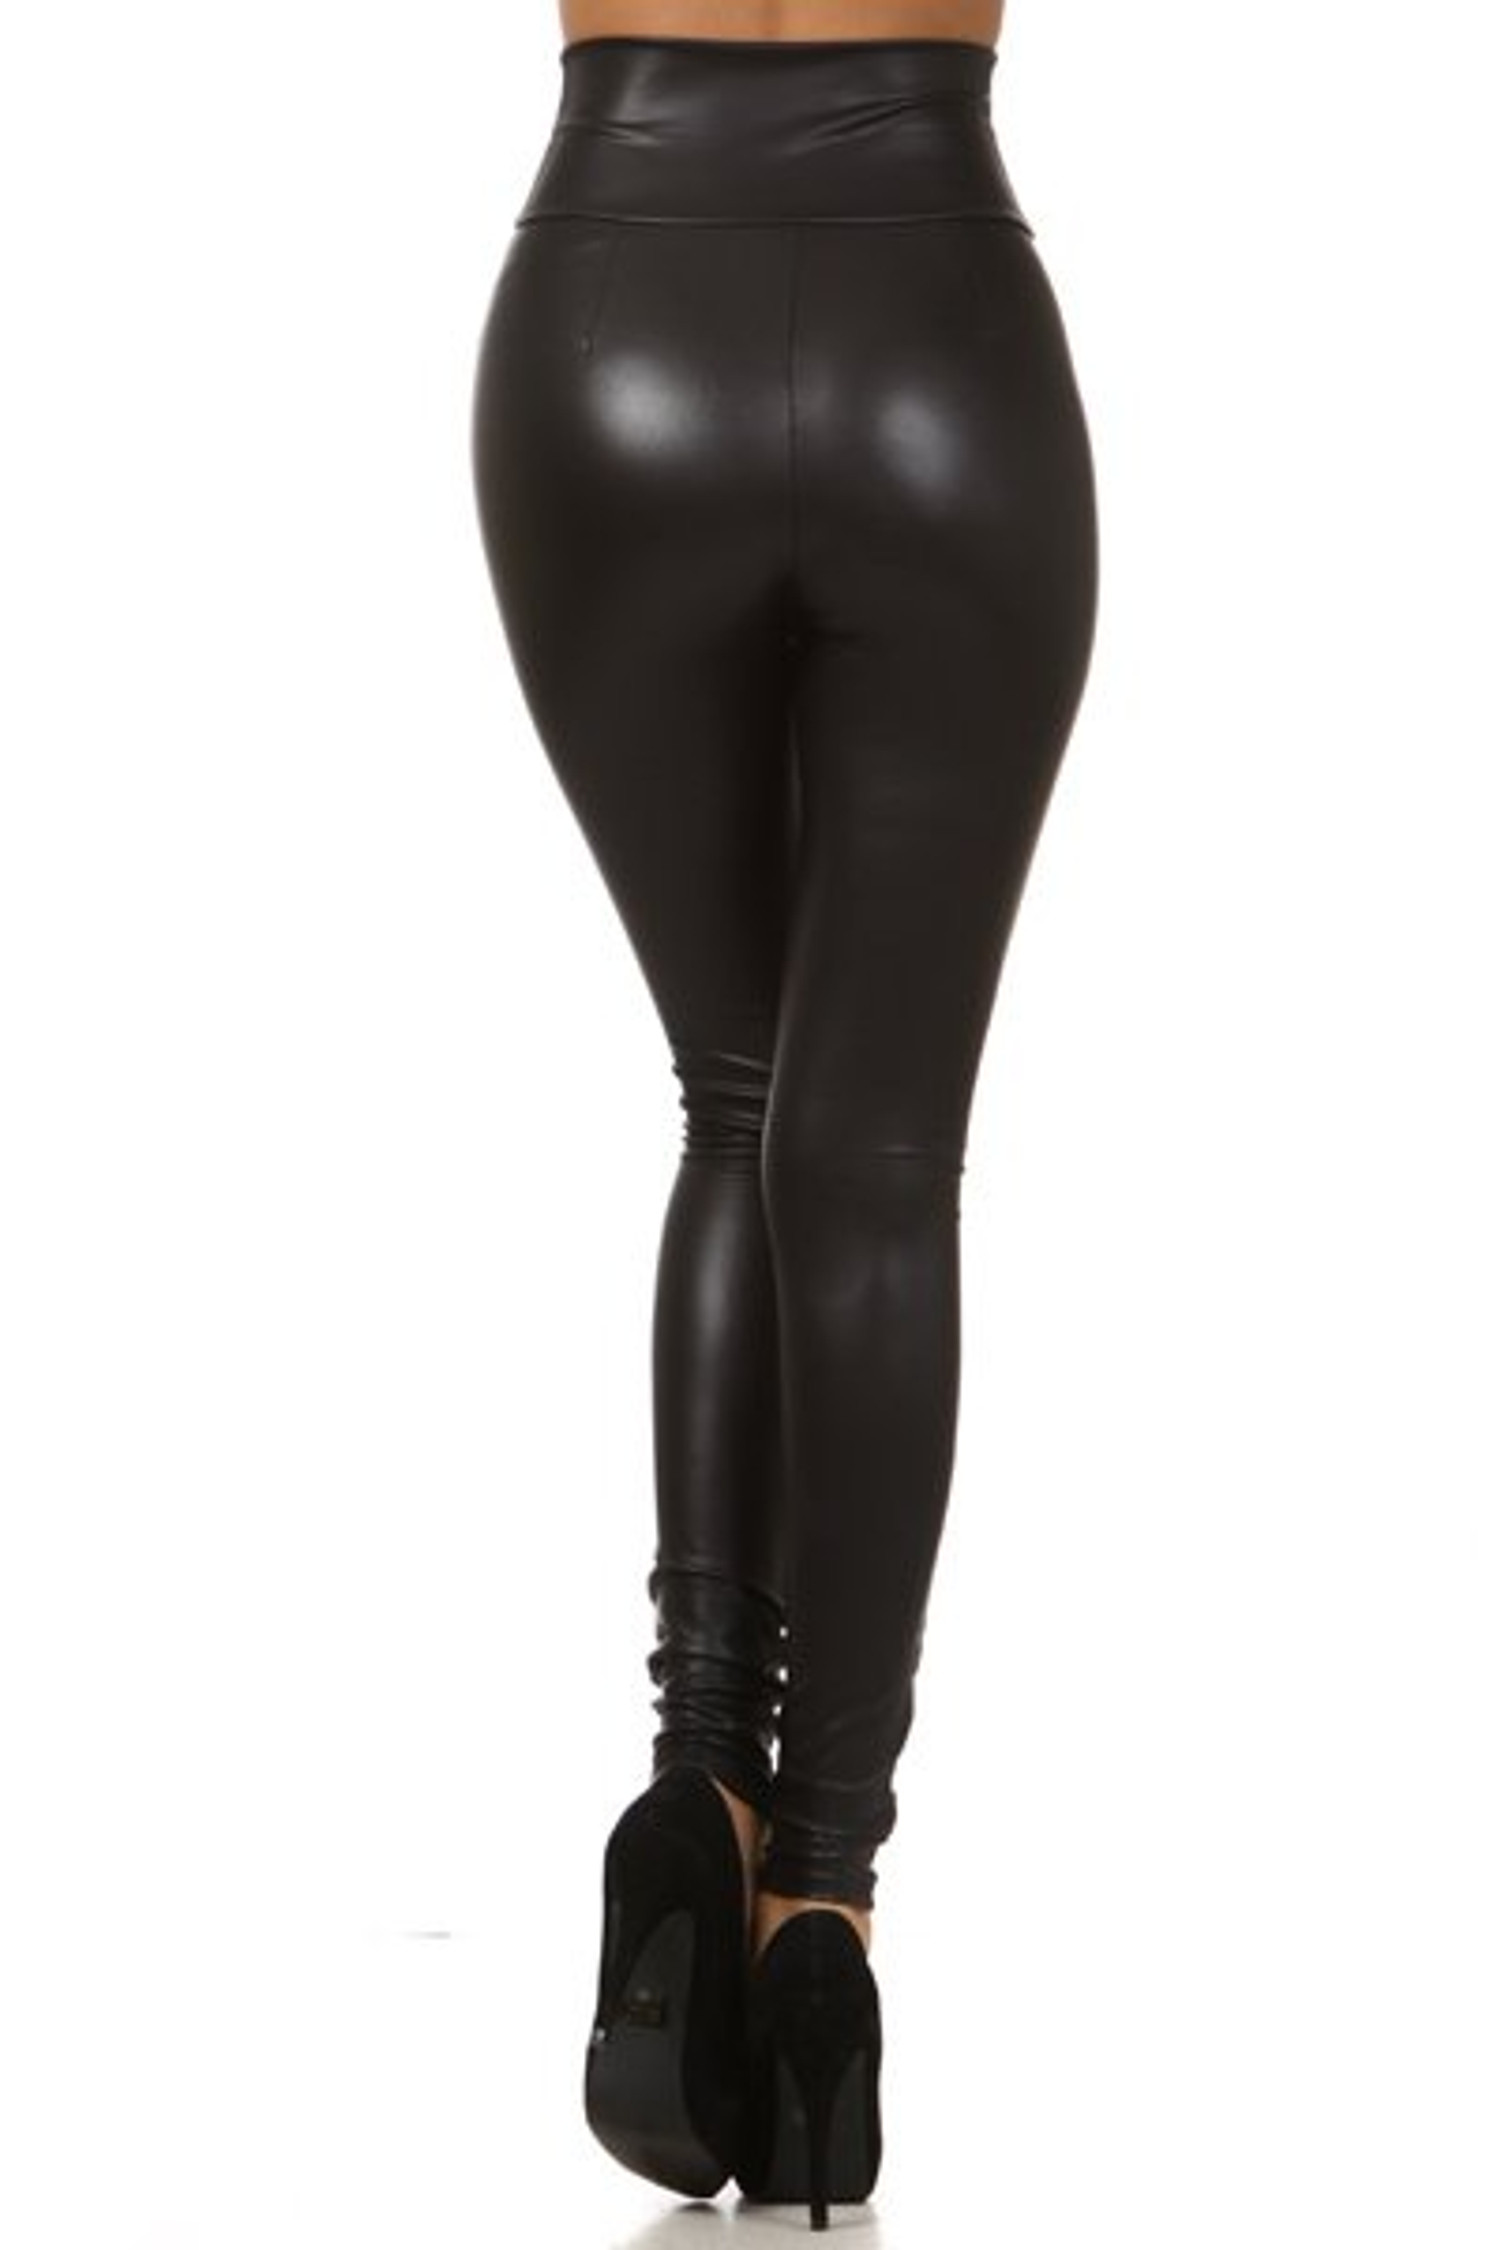 High Waisted Matte Faux Leather Leggings with Zipper - Made in USA